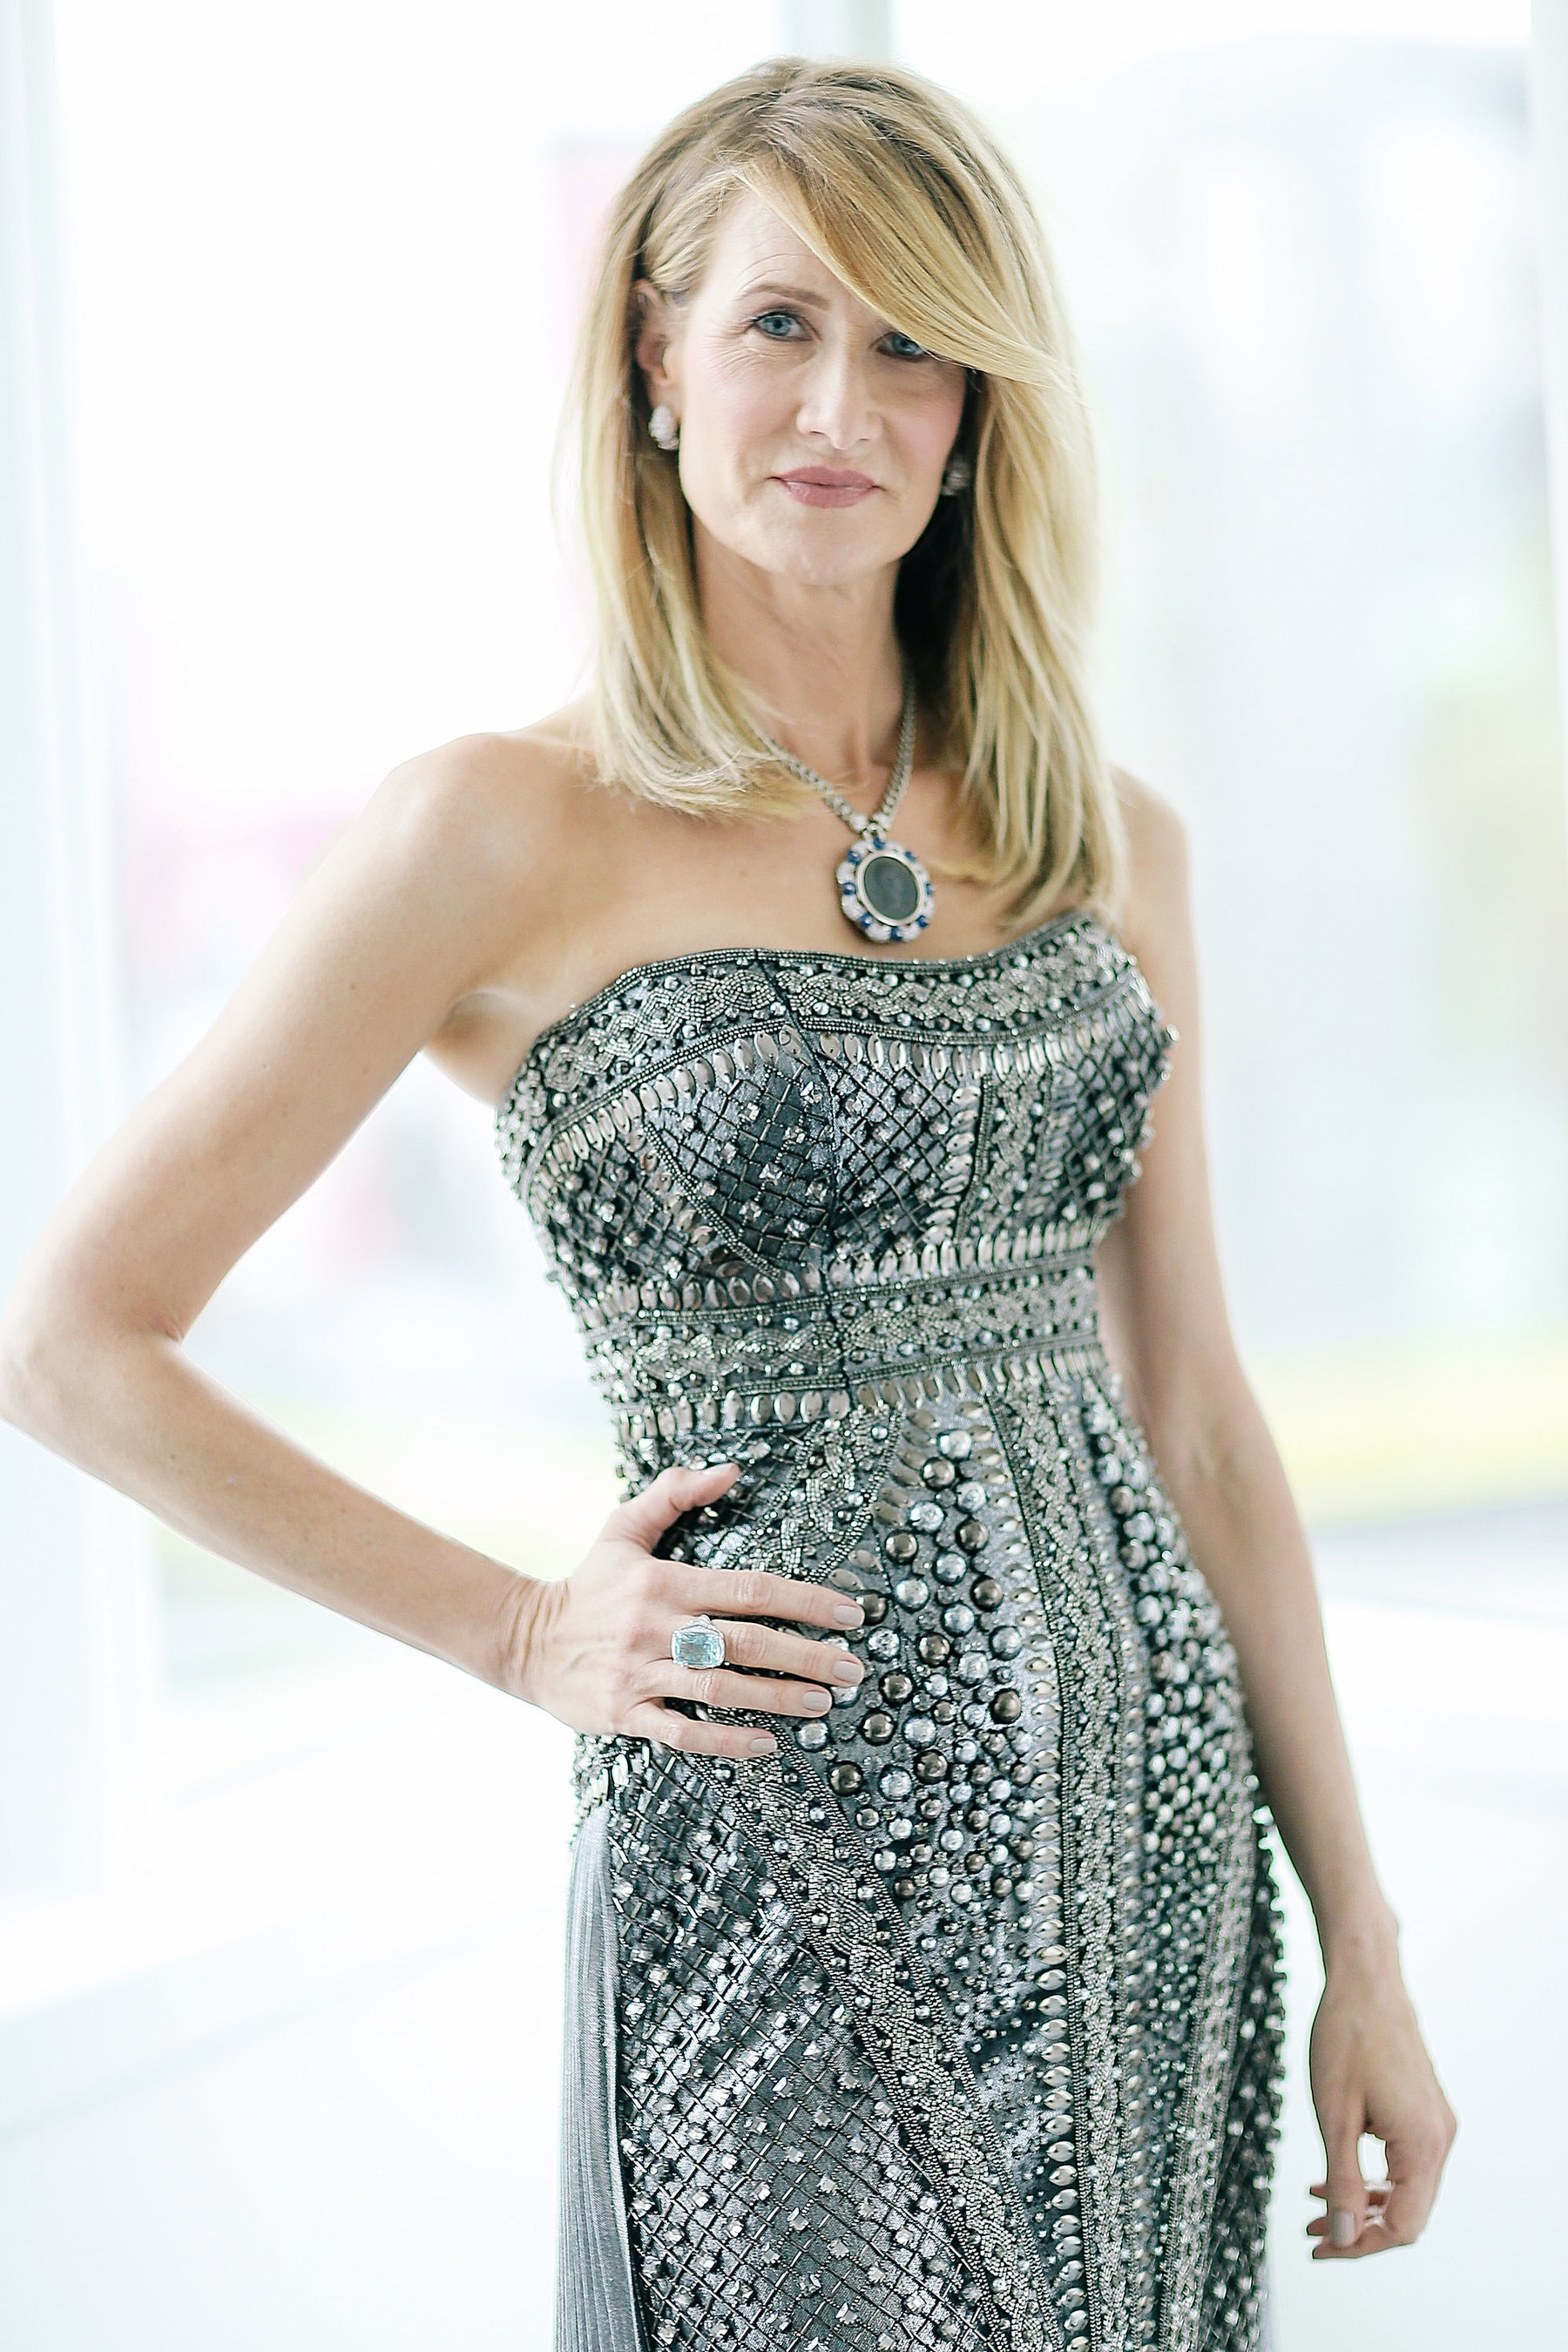 Best Supporting Actress nominee Laura Dern prepares for the Oscars(R) wearing a Bulgari turquoise ring in ...